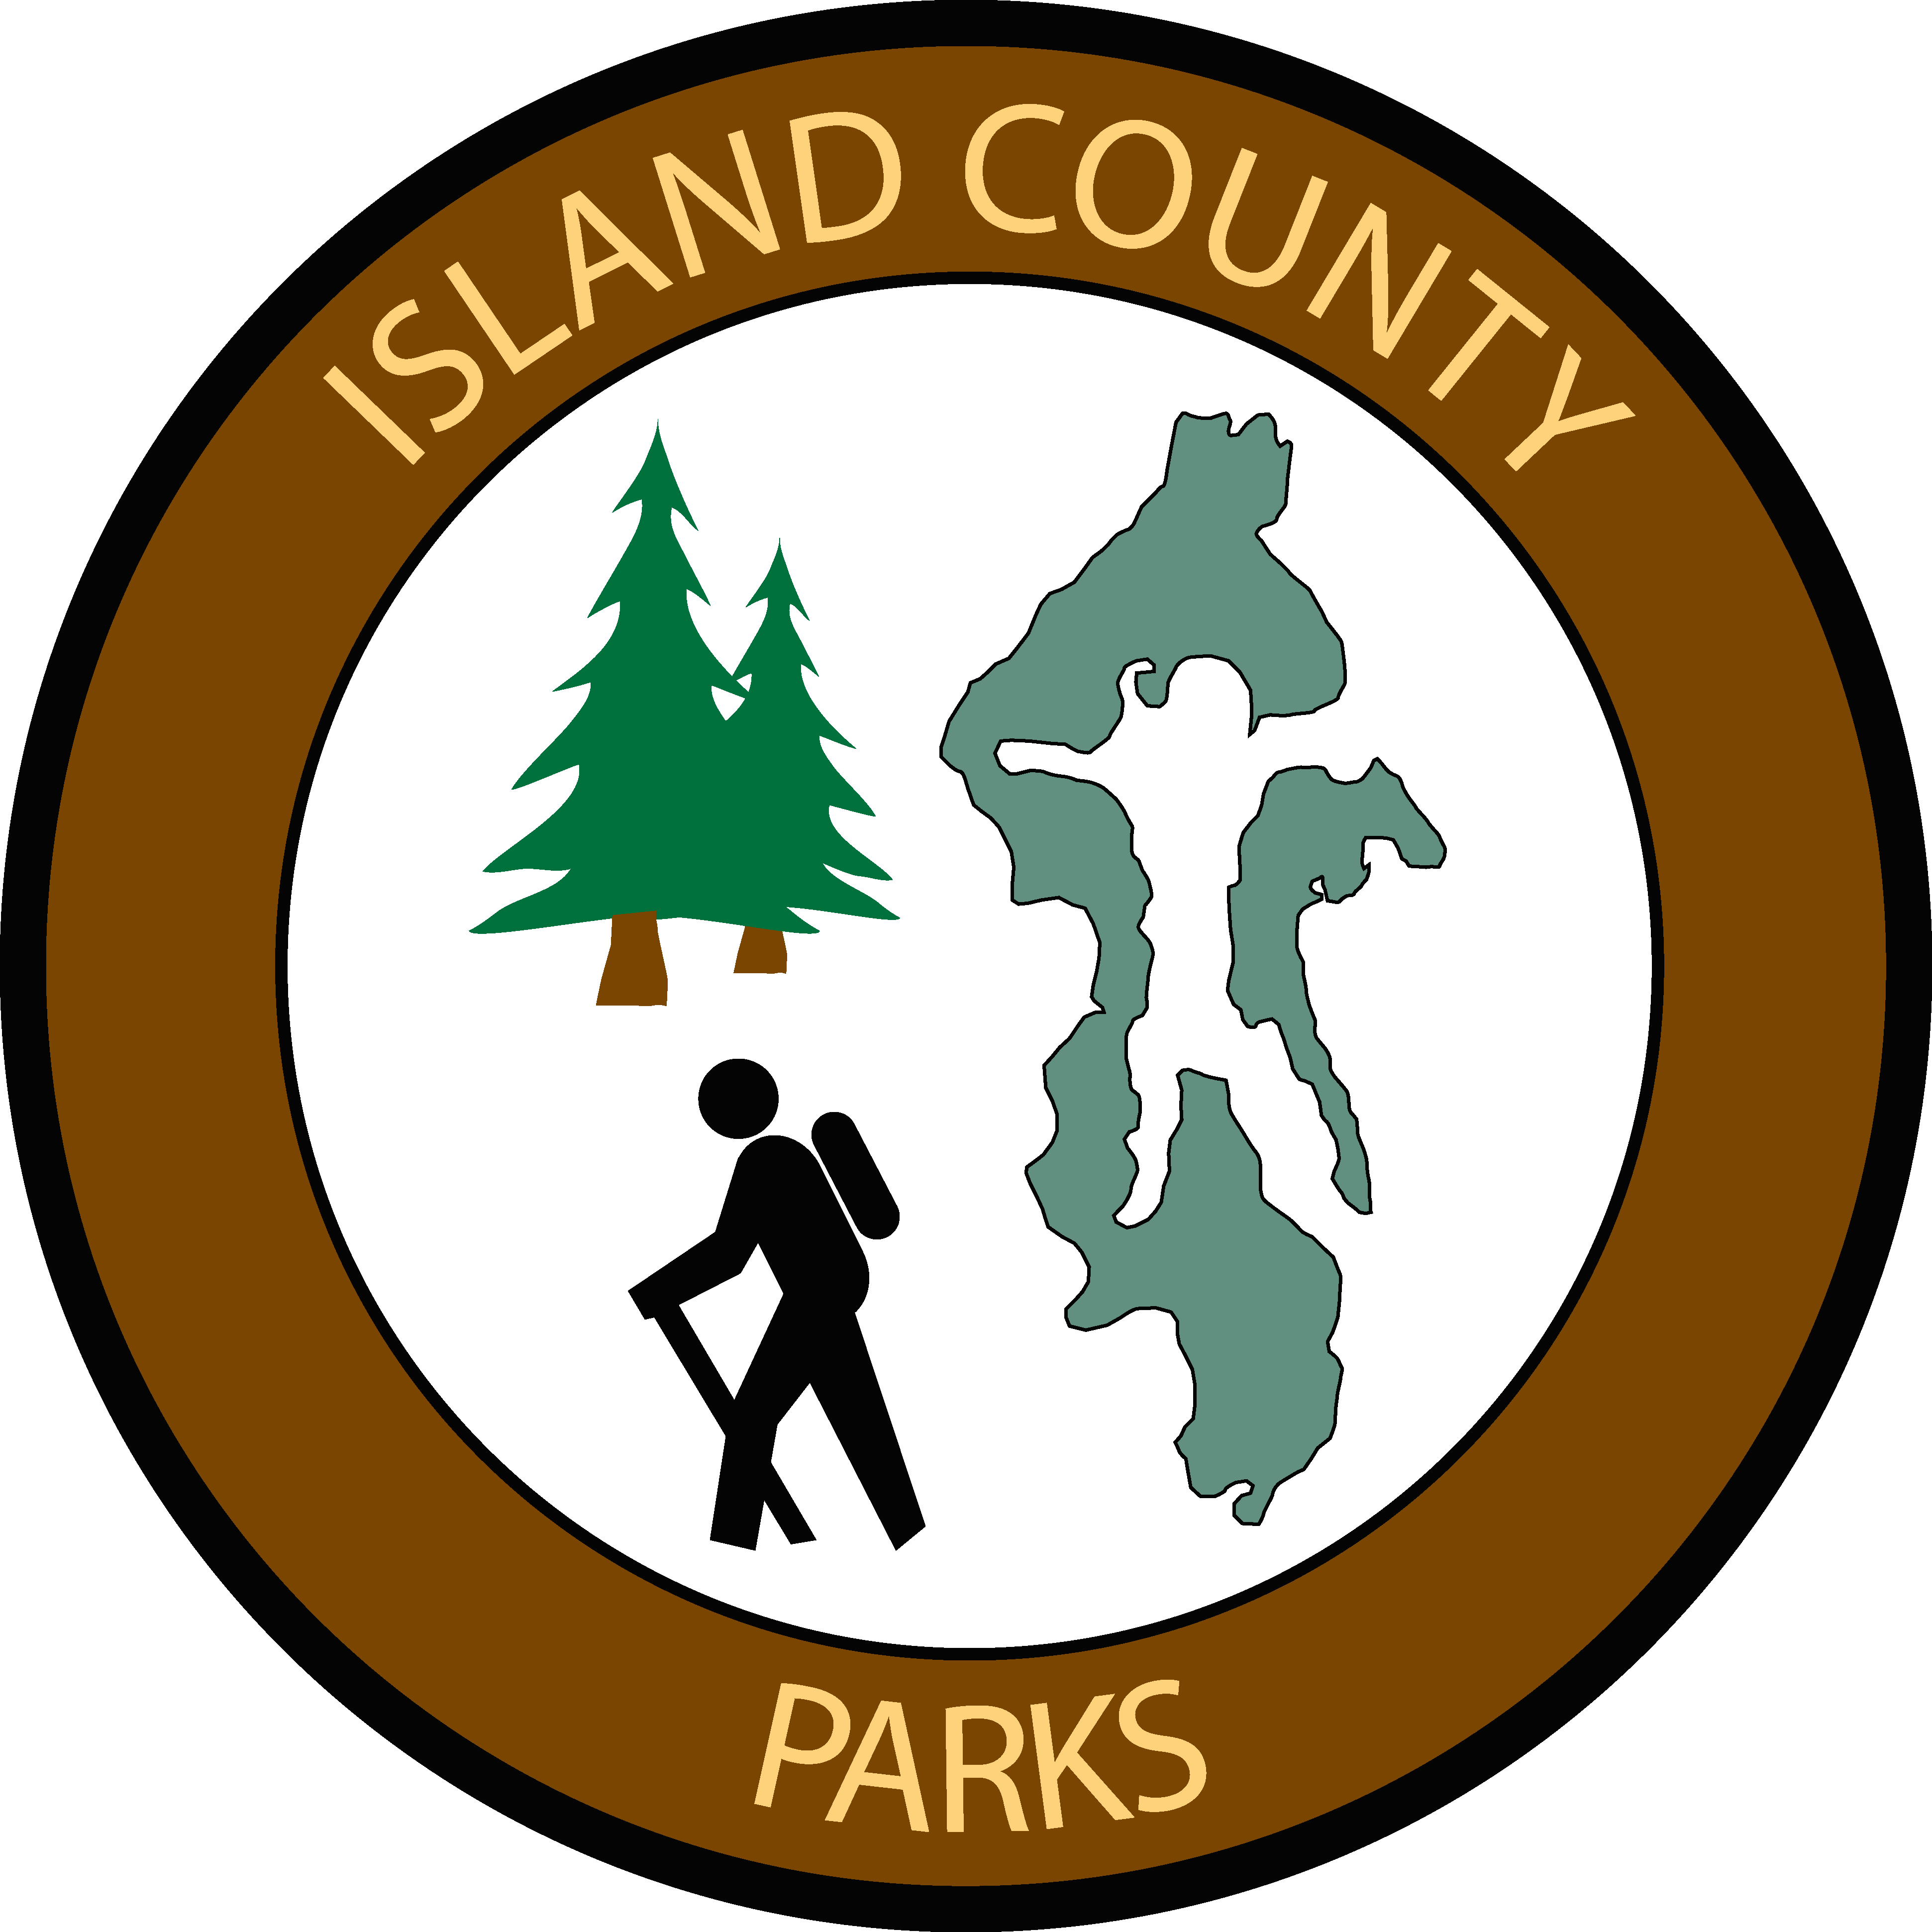 Parks trails logofinalpng. Volunteering clipart volunteer opportunity